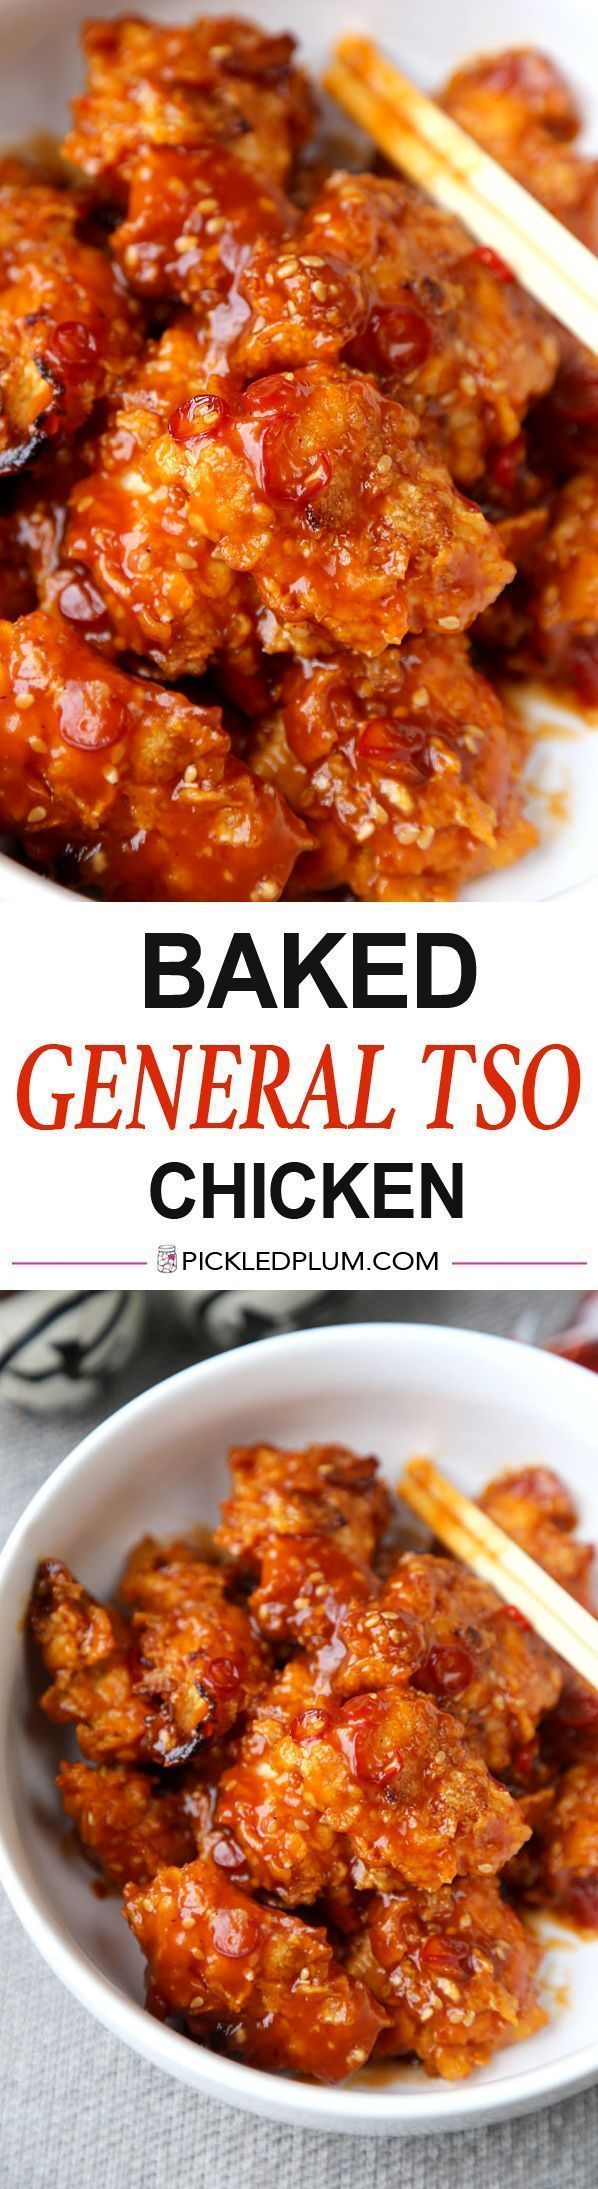 "Baked General Tso Chicken Recipe - Crushed Cornflakes imitate fried chicken so well you'll forget you are eating healthy! Recipe, Chinese, chicken, baked, healthier, main, dinner | <a href="""" rel=""nofollow"" target=""_blank"">www.pickledplum.c...</a>"